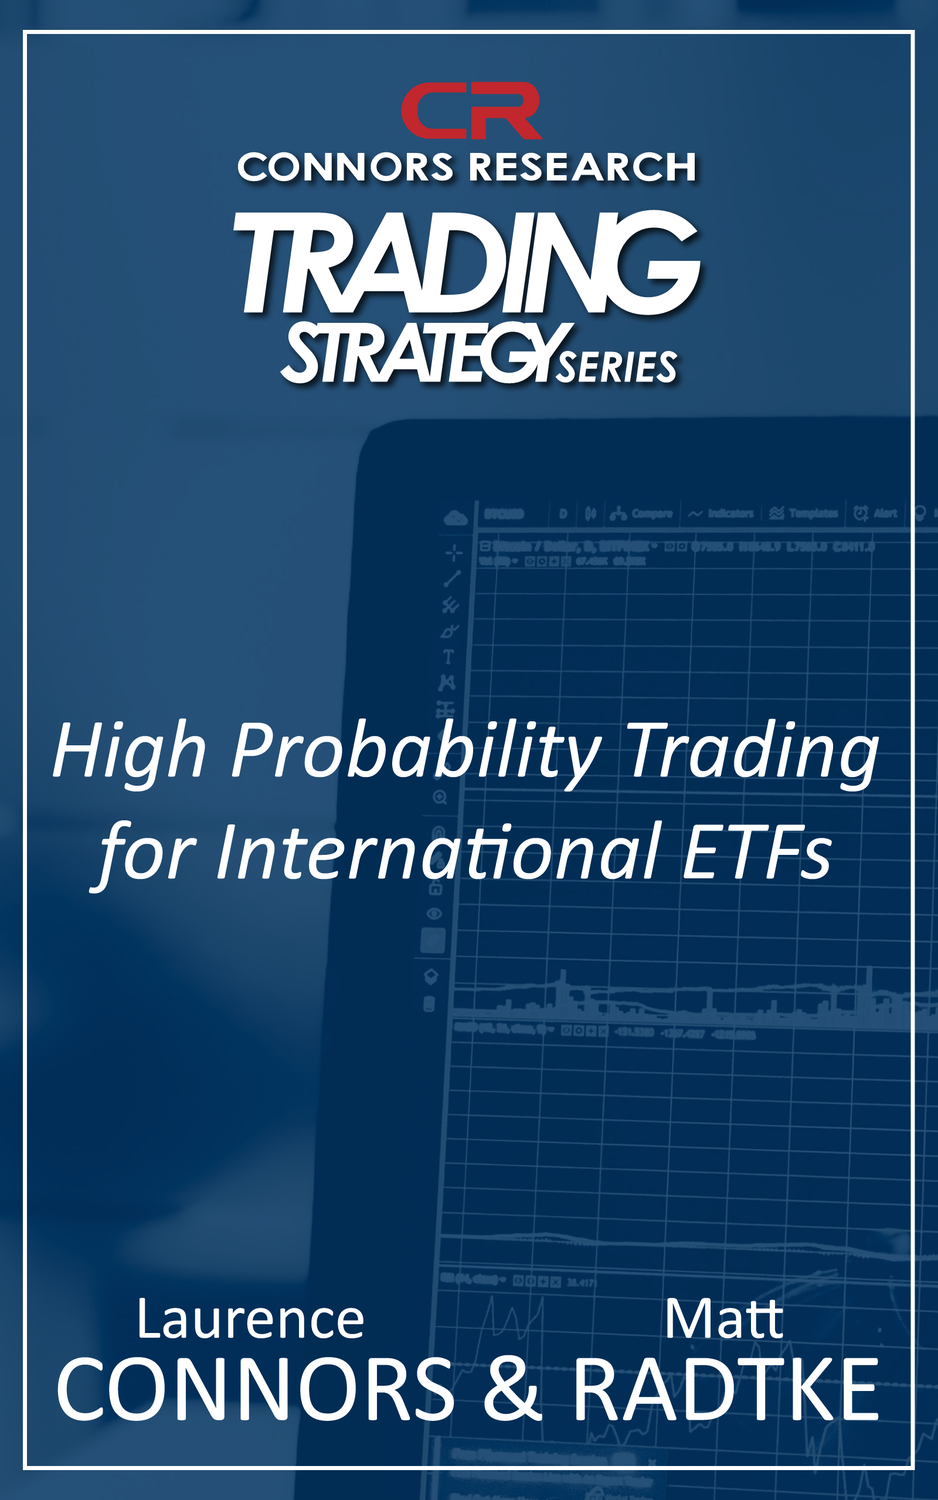 Connors Research Trading Strategy Series: High Probability Trading for International ETFs